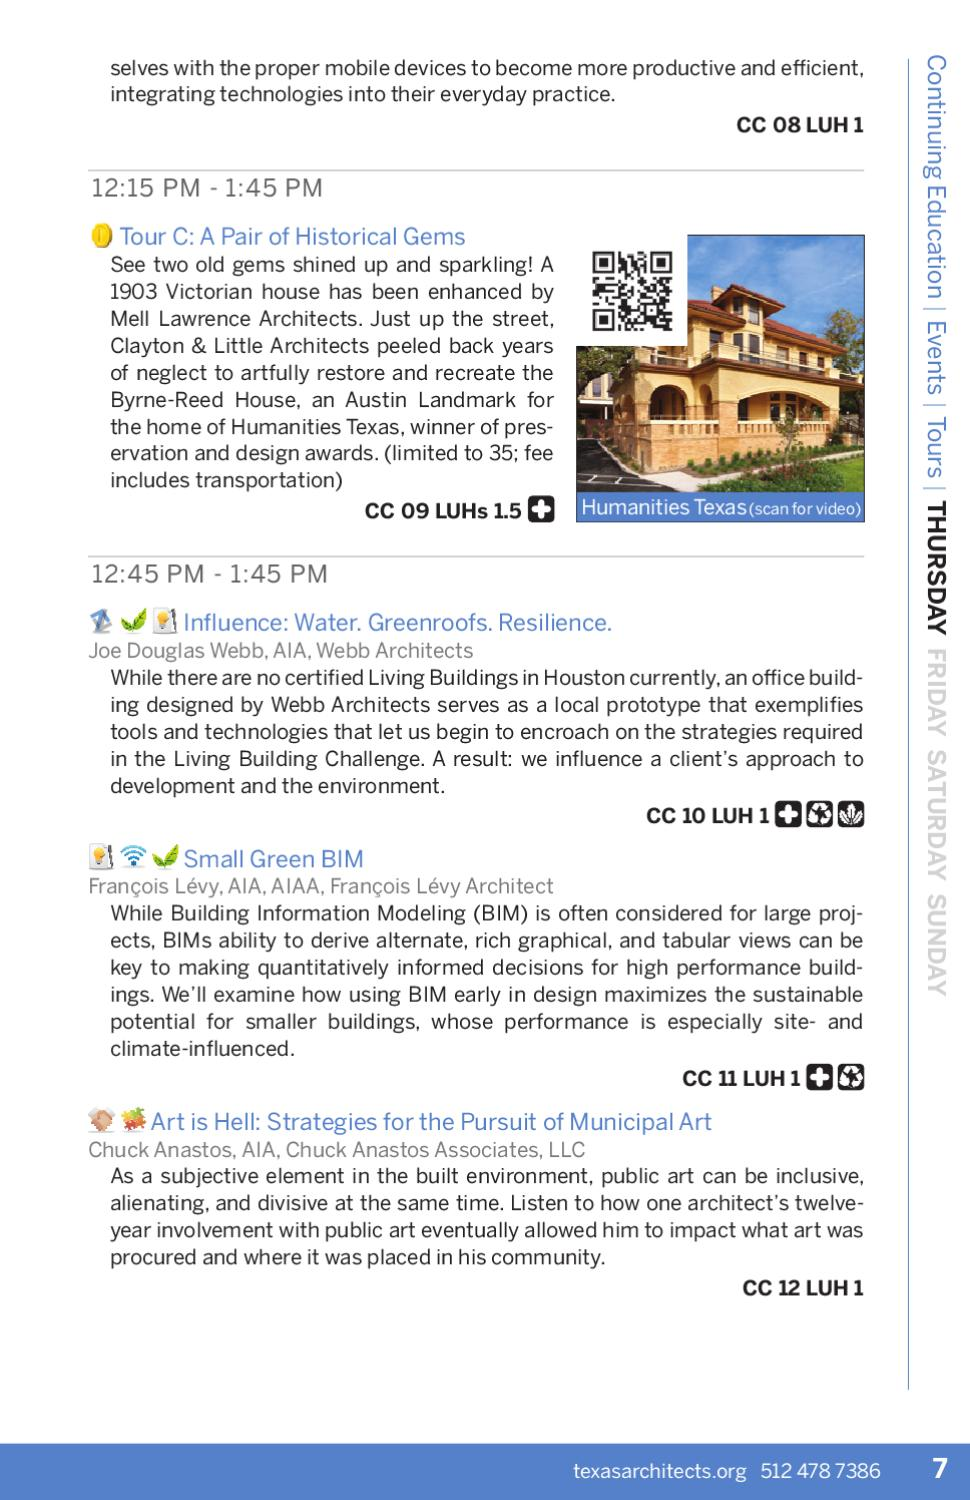 Texas Architects Convention 2012 Registration Guide By Texas Society Of Architects Issuu